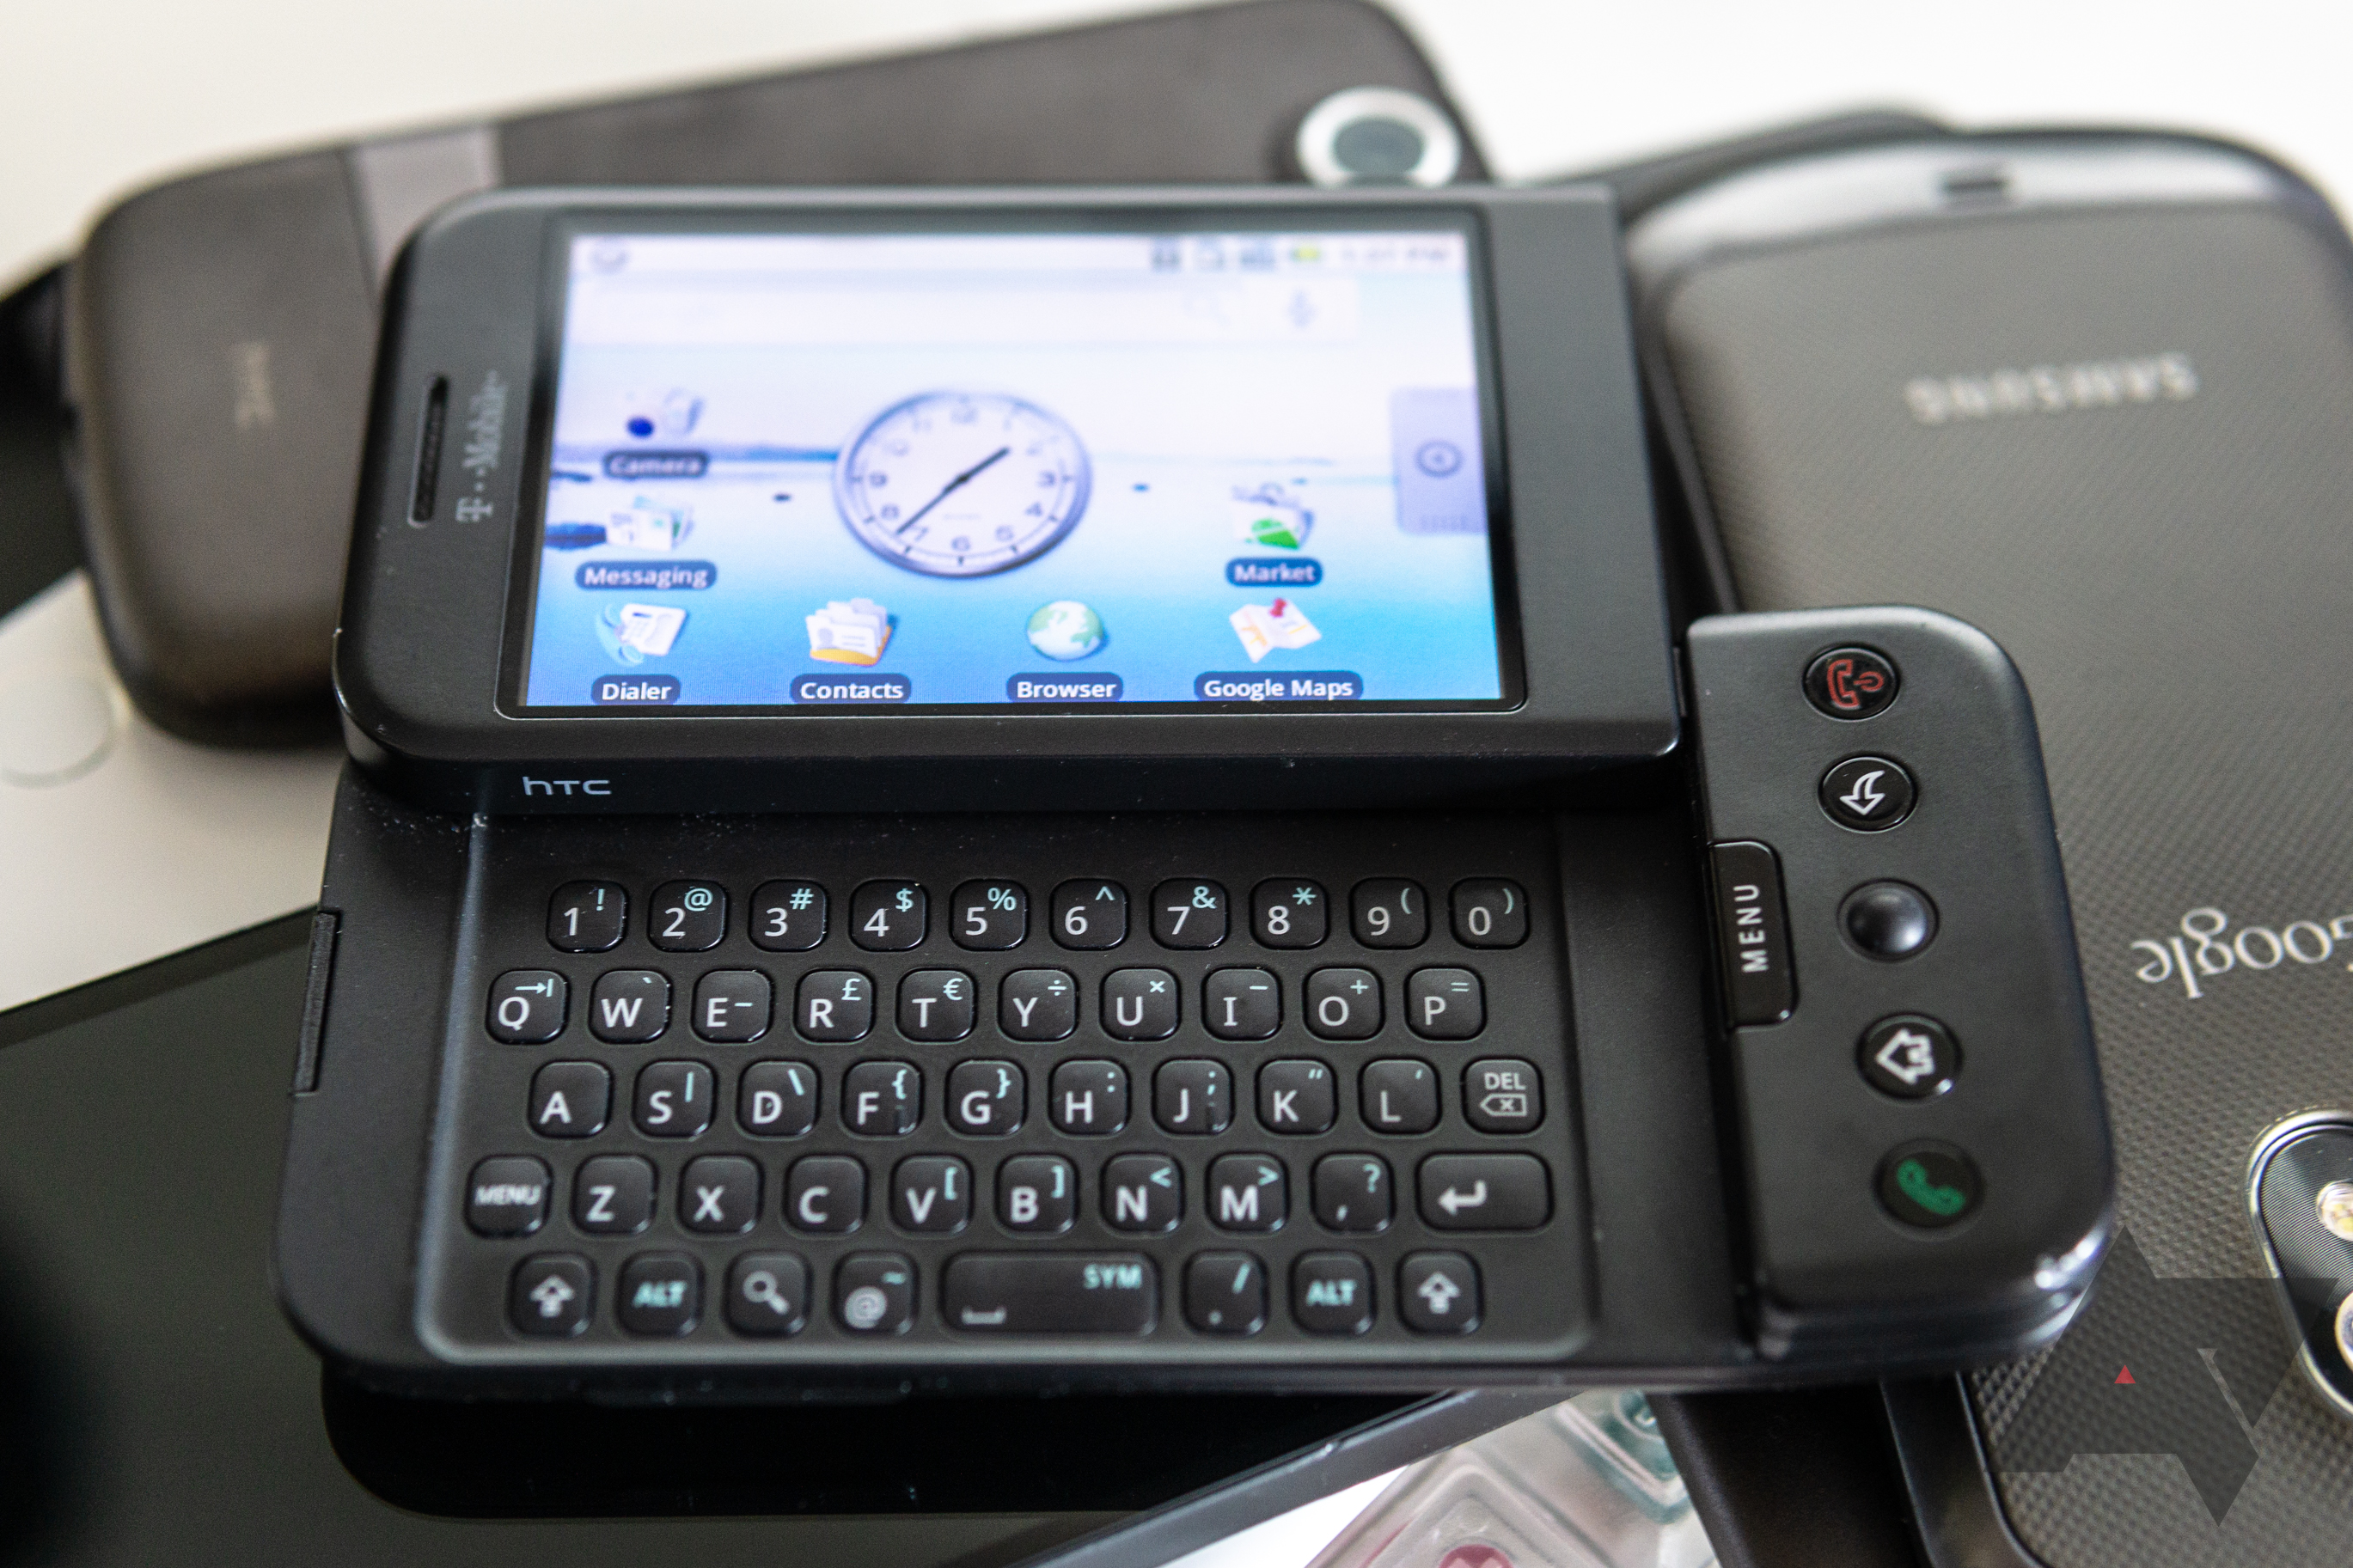 Using the HTC G1, 10 years later: 2008's smartphone is effectively a